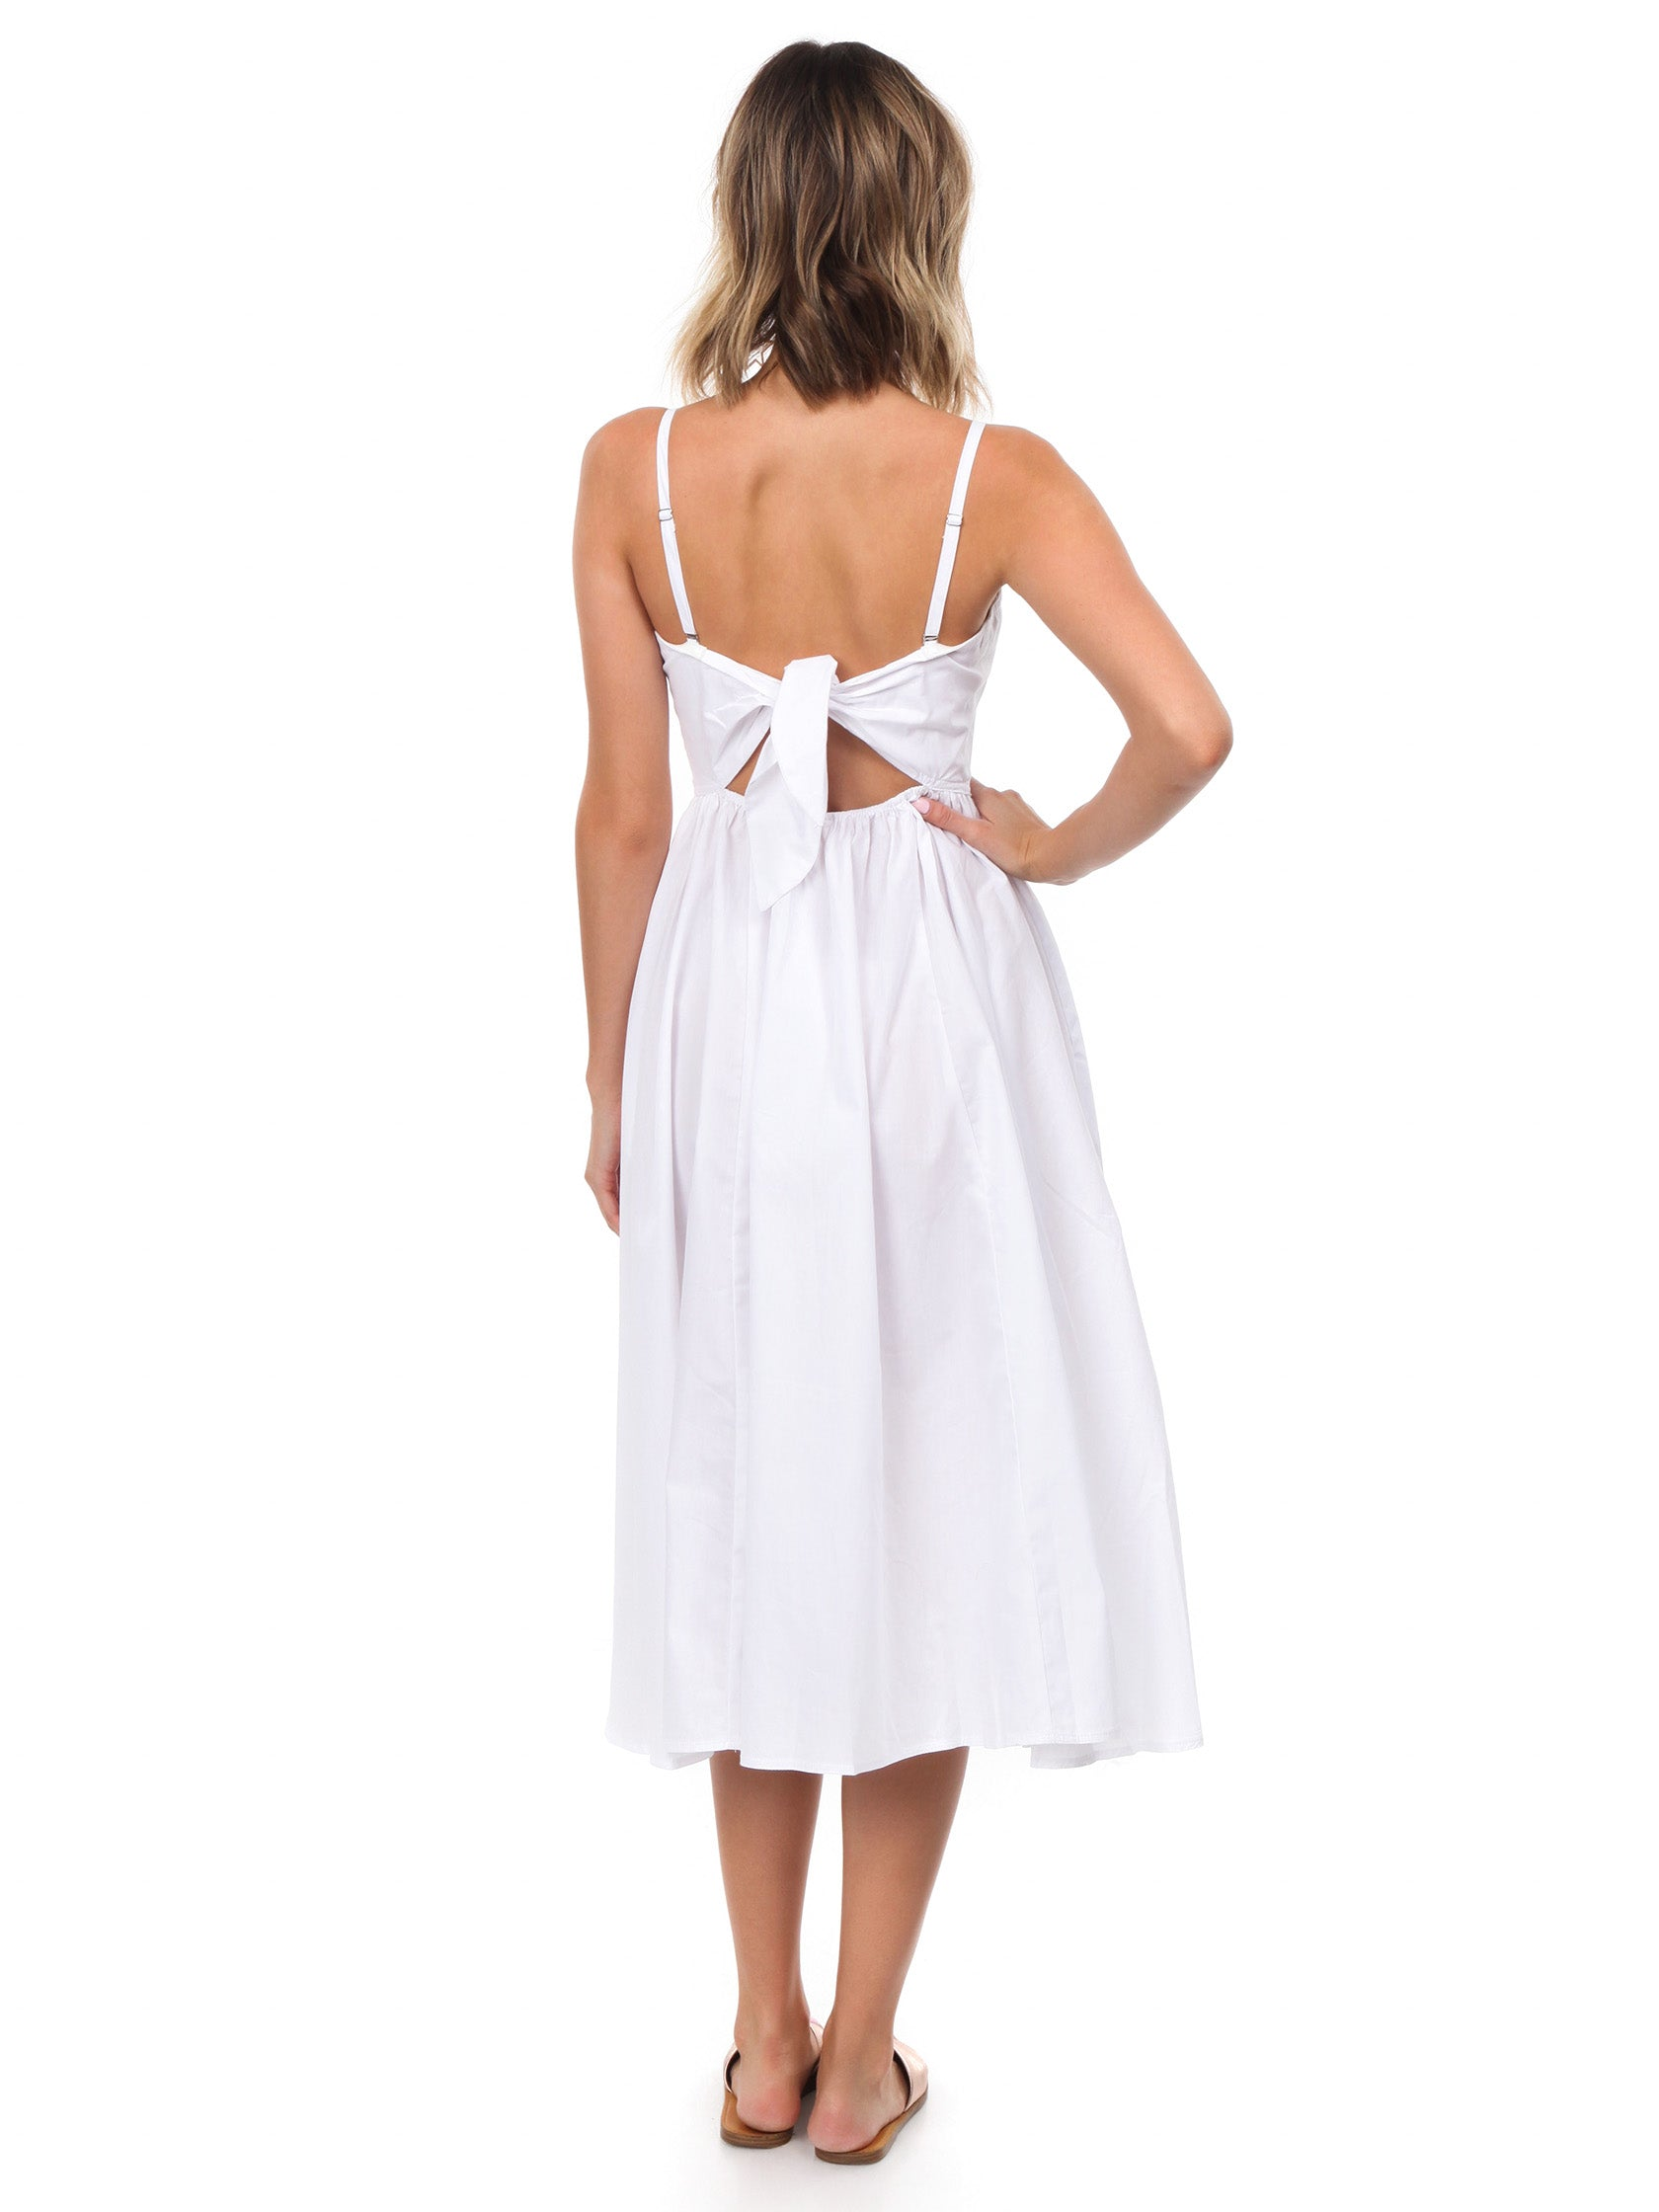 Women wearing a dress rental from Free People called Perfect Peach Poplin Midi